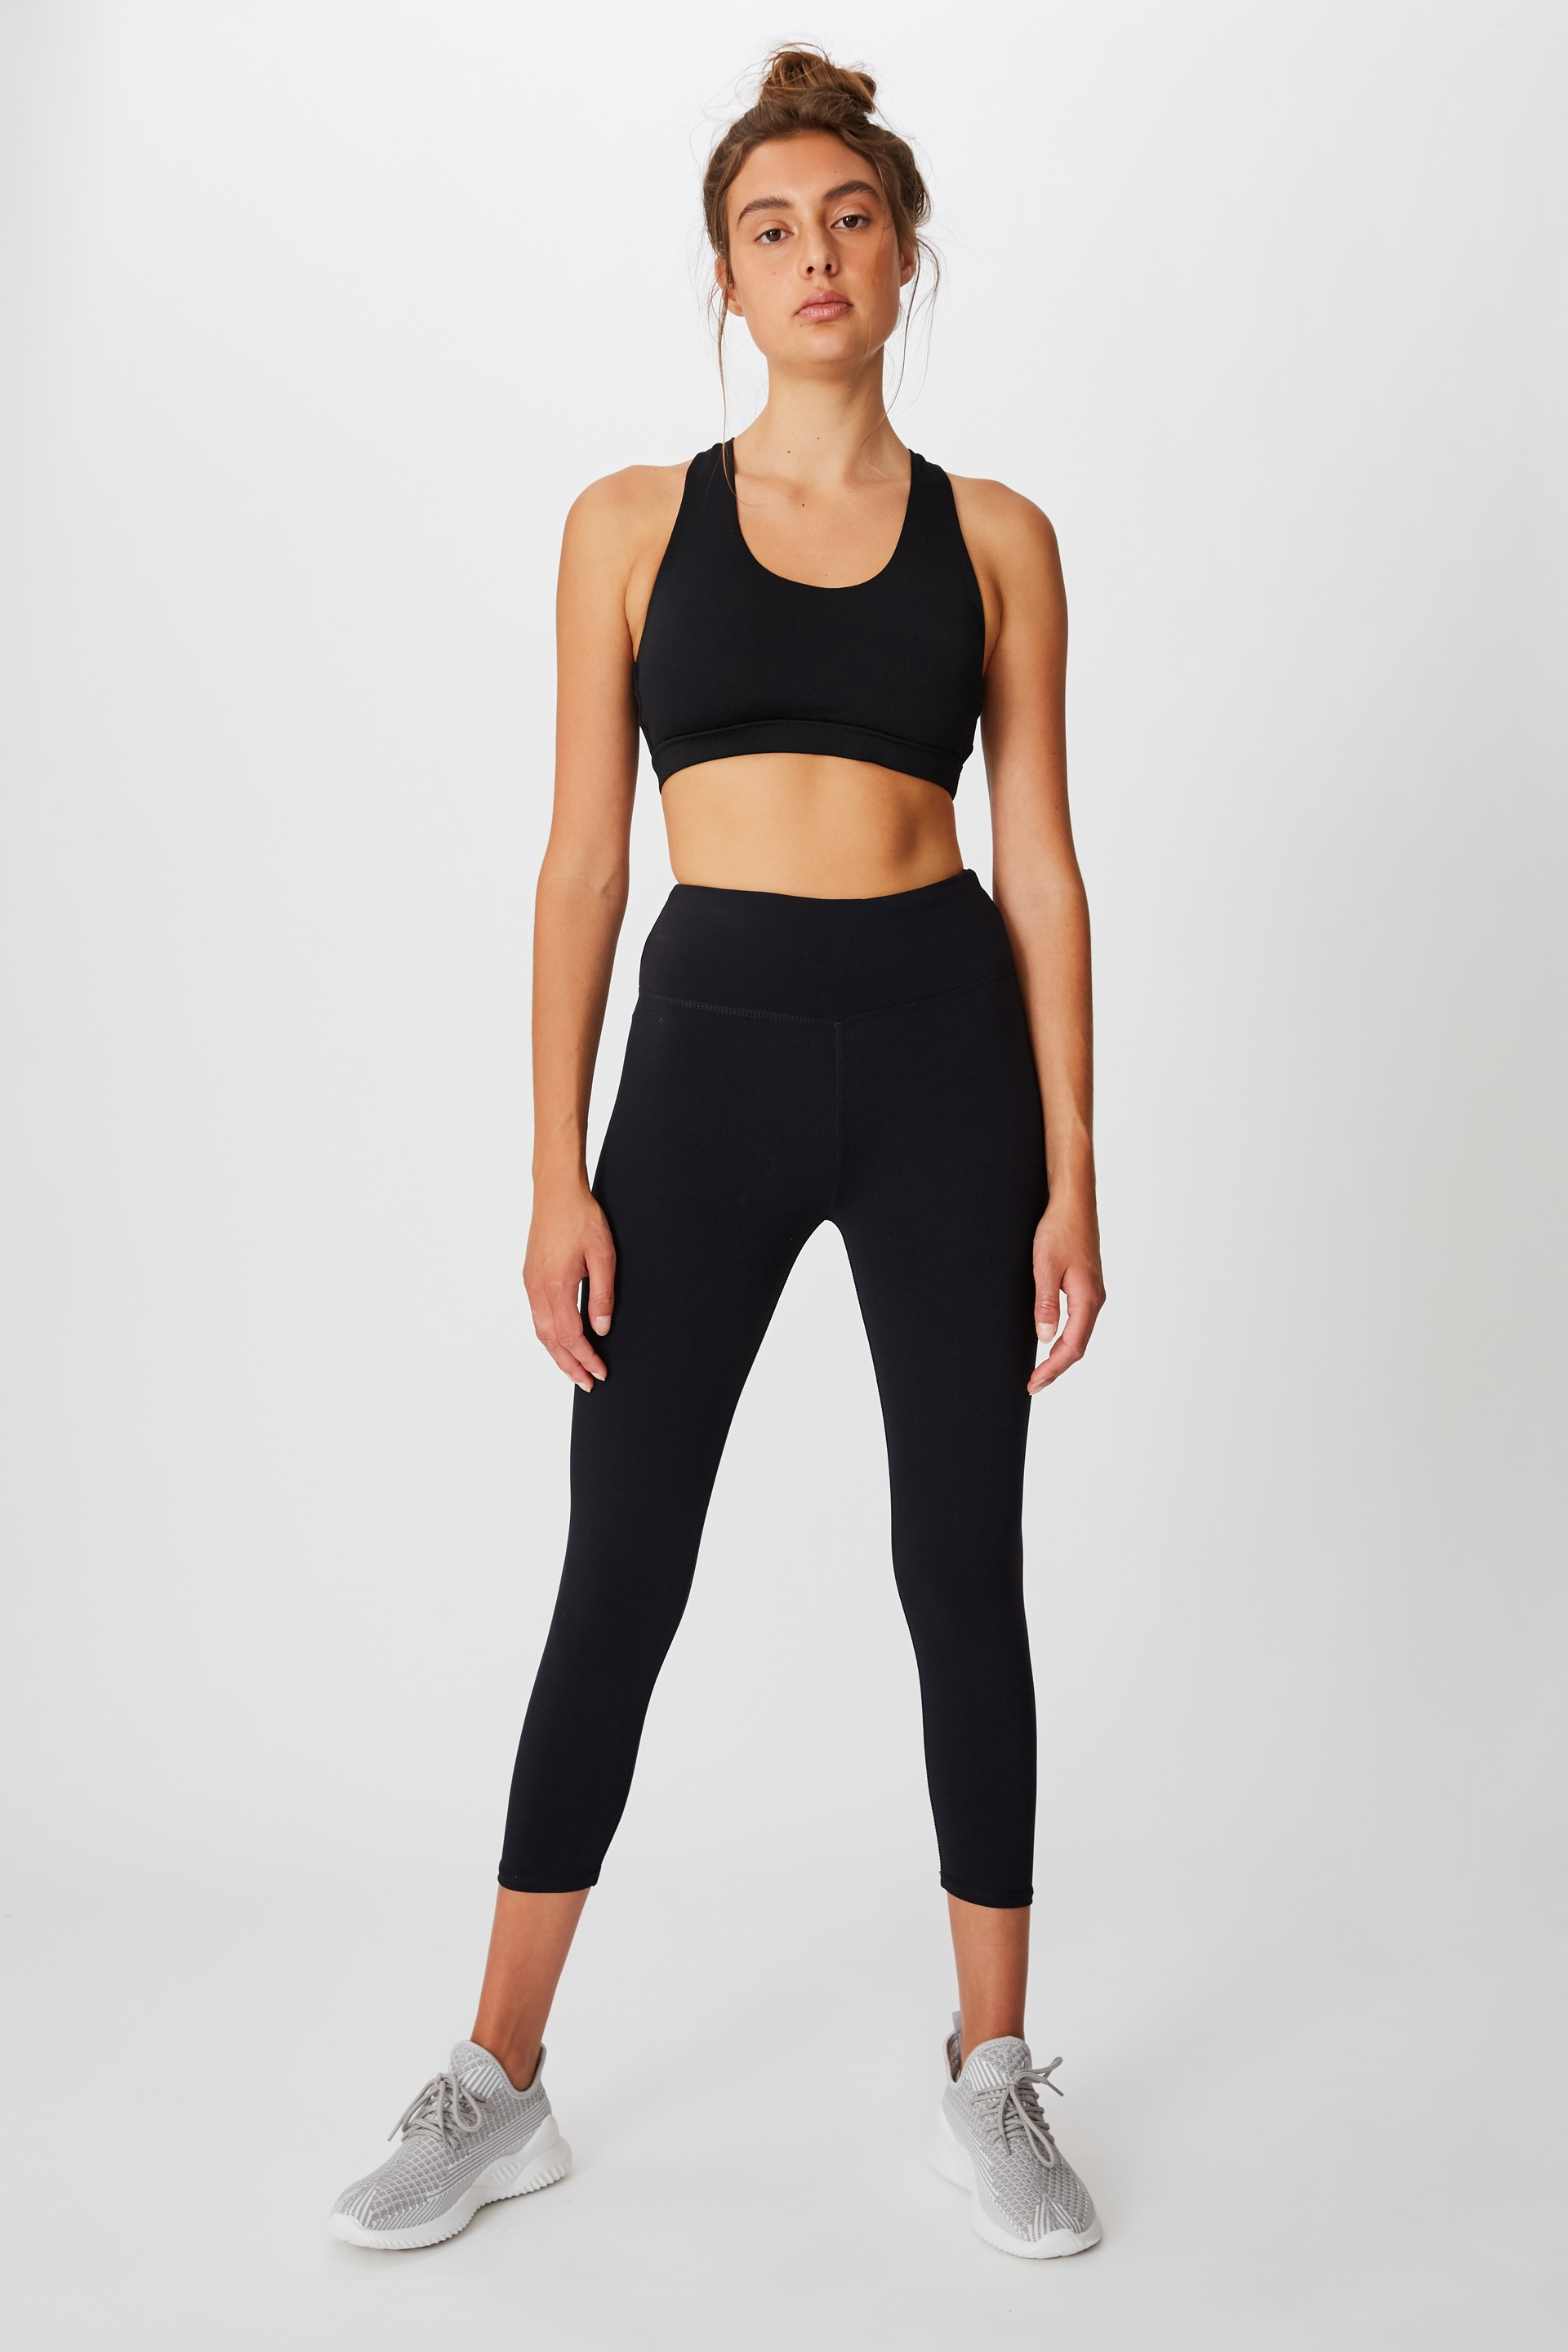 The Active Core Cropped Tight is a must-have in every girl's workout wardrobe. Designed as skinny fit to hug firmly on the body, these flattering 3/4 length active leggings ensure maximum comfort while you workout. Moisture wicking fabric treatment will keep you cool and dry. Skinny fit designed to firmly hug the body Cropped tight, sitting 3/4 down the calf Hidden drawcord inside waistband Internal waistband coin pocket Knitted garment Moisture wicking fabric treatment keeps you cool and dry Garment stretches and moves with you Flatlocked stitching MODEL WEARS SIZE: SMALL - AU 10 US 6 EUR 38 88% POLYAMIDE 12% ELATANE